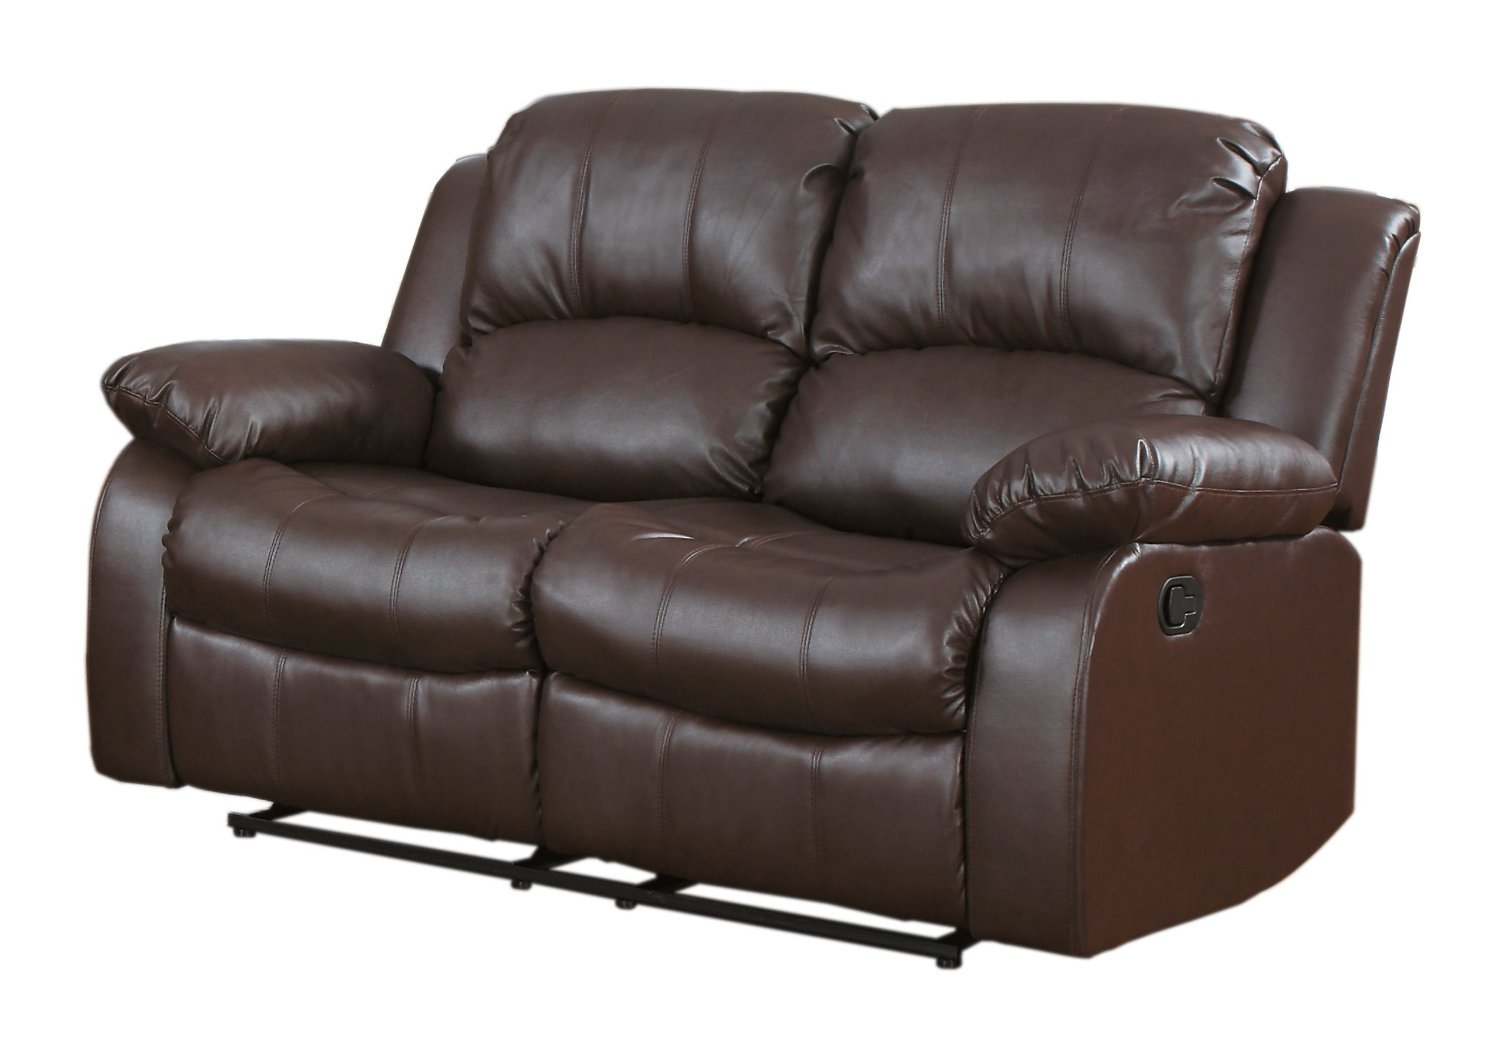 Finding the best power recliner loveseat in the Best loveseats